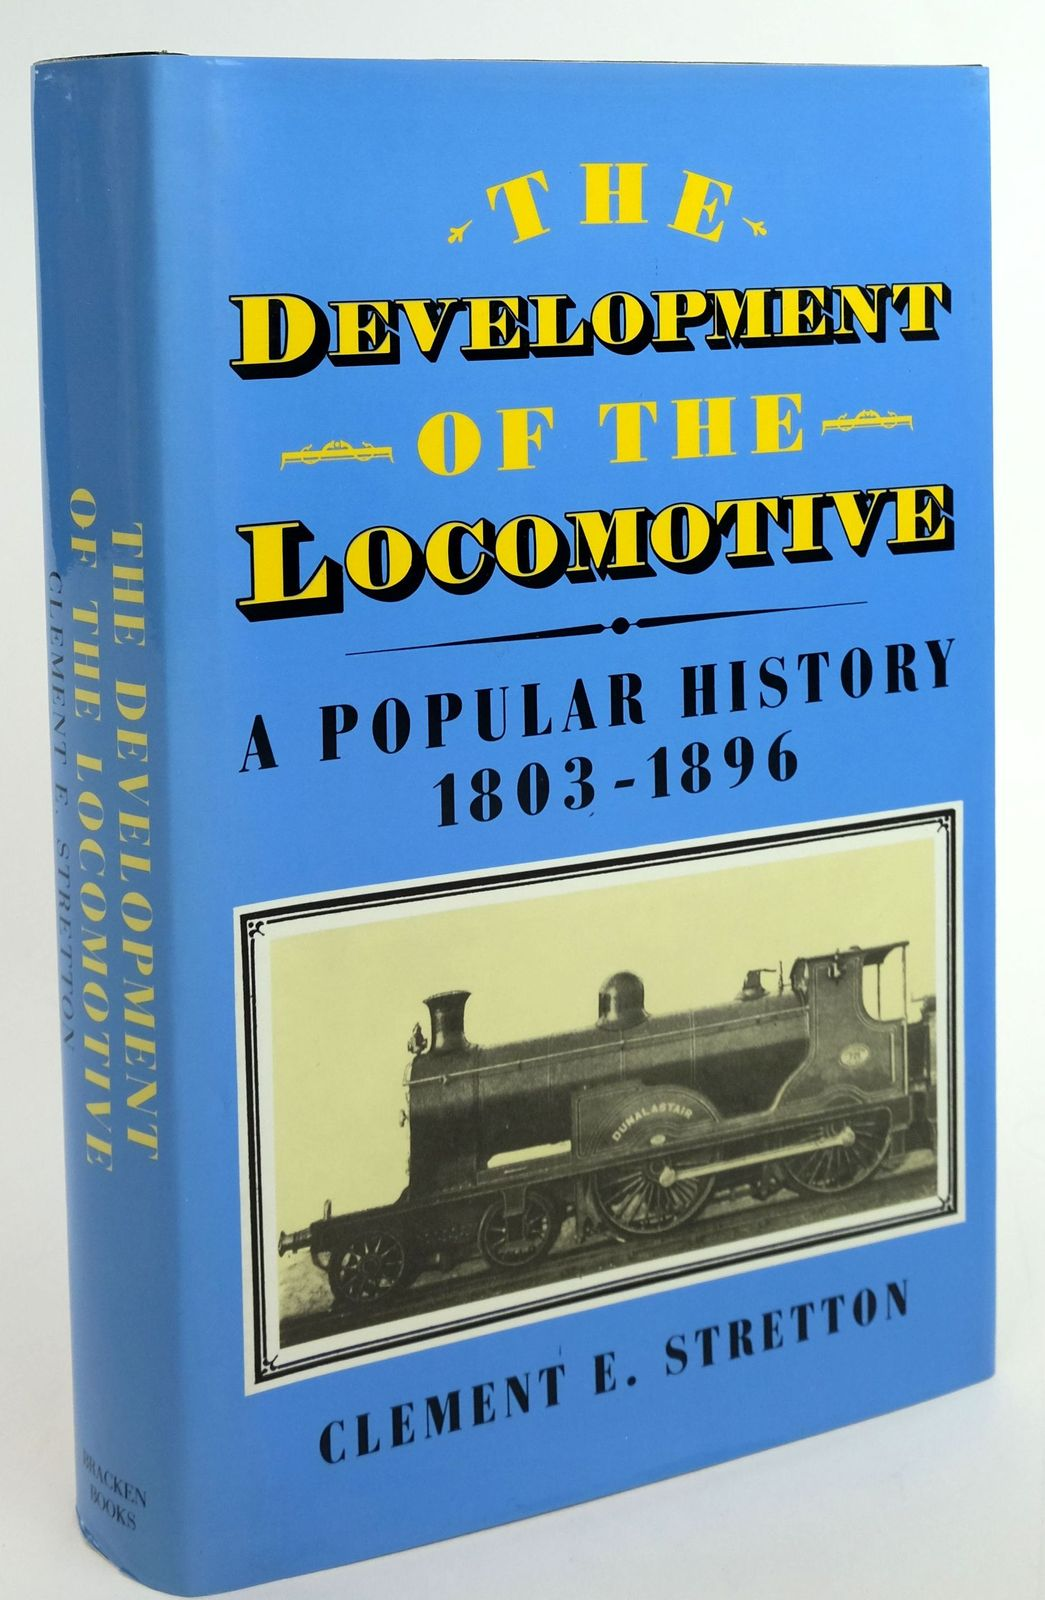 Photo of THE DEVELOPMENT OF THE LOCOMOTIVE A POPULAR HISTORY 1803-1896- Stock Number: 1820007